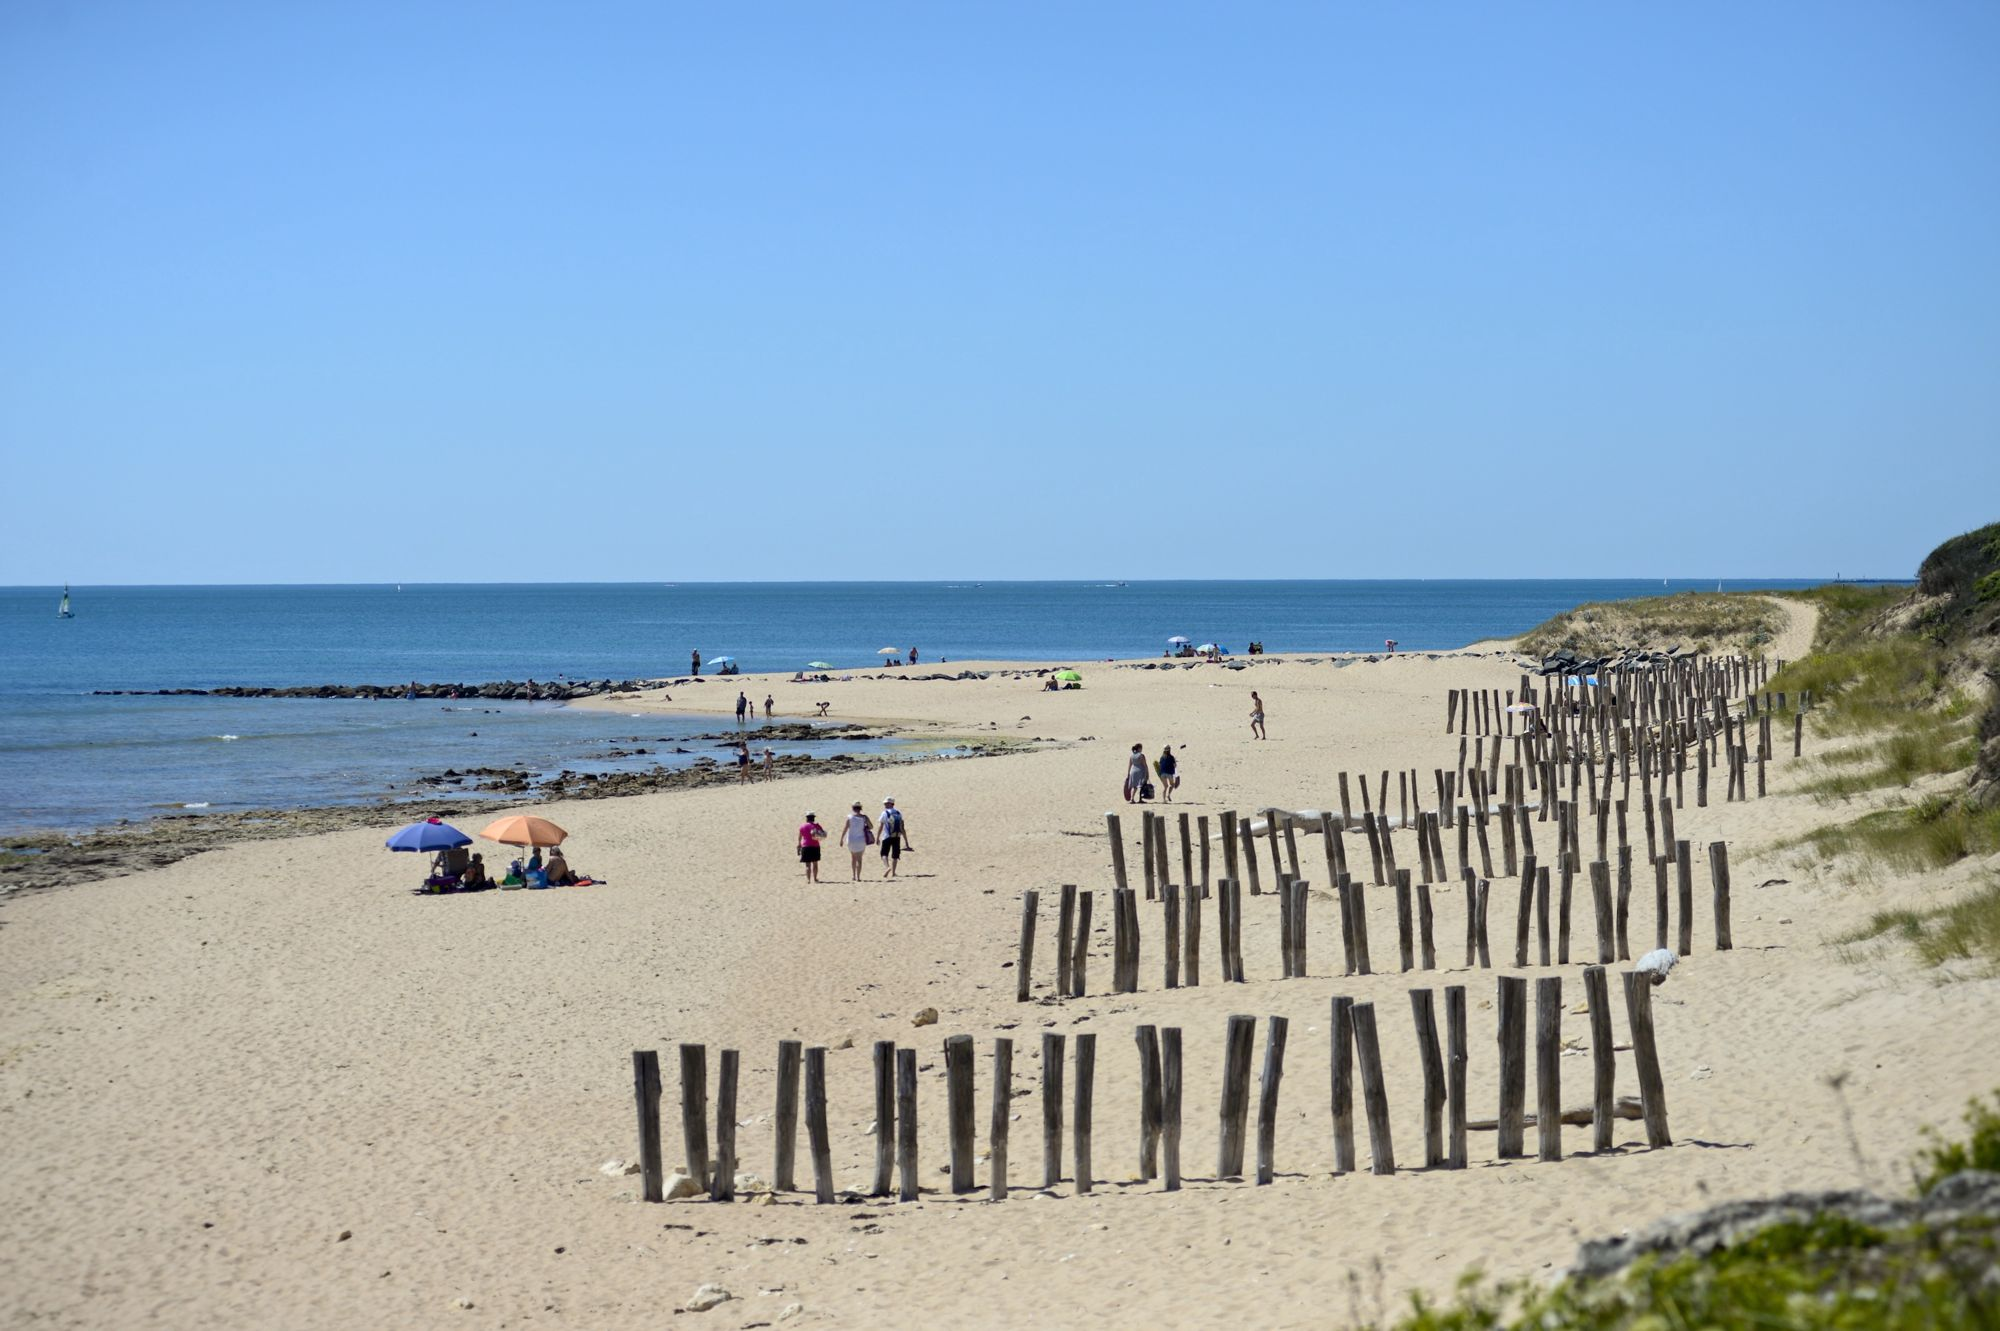 Campsites in Charente-Maritime holidays at I Love This Campsite